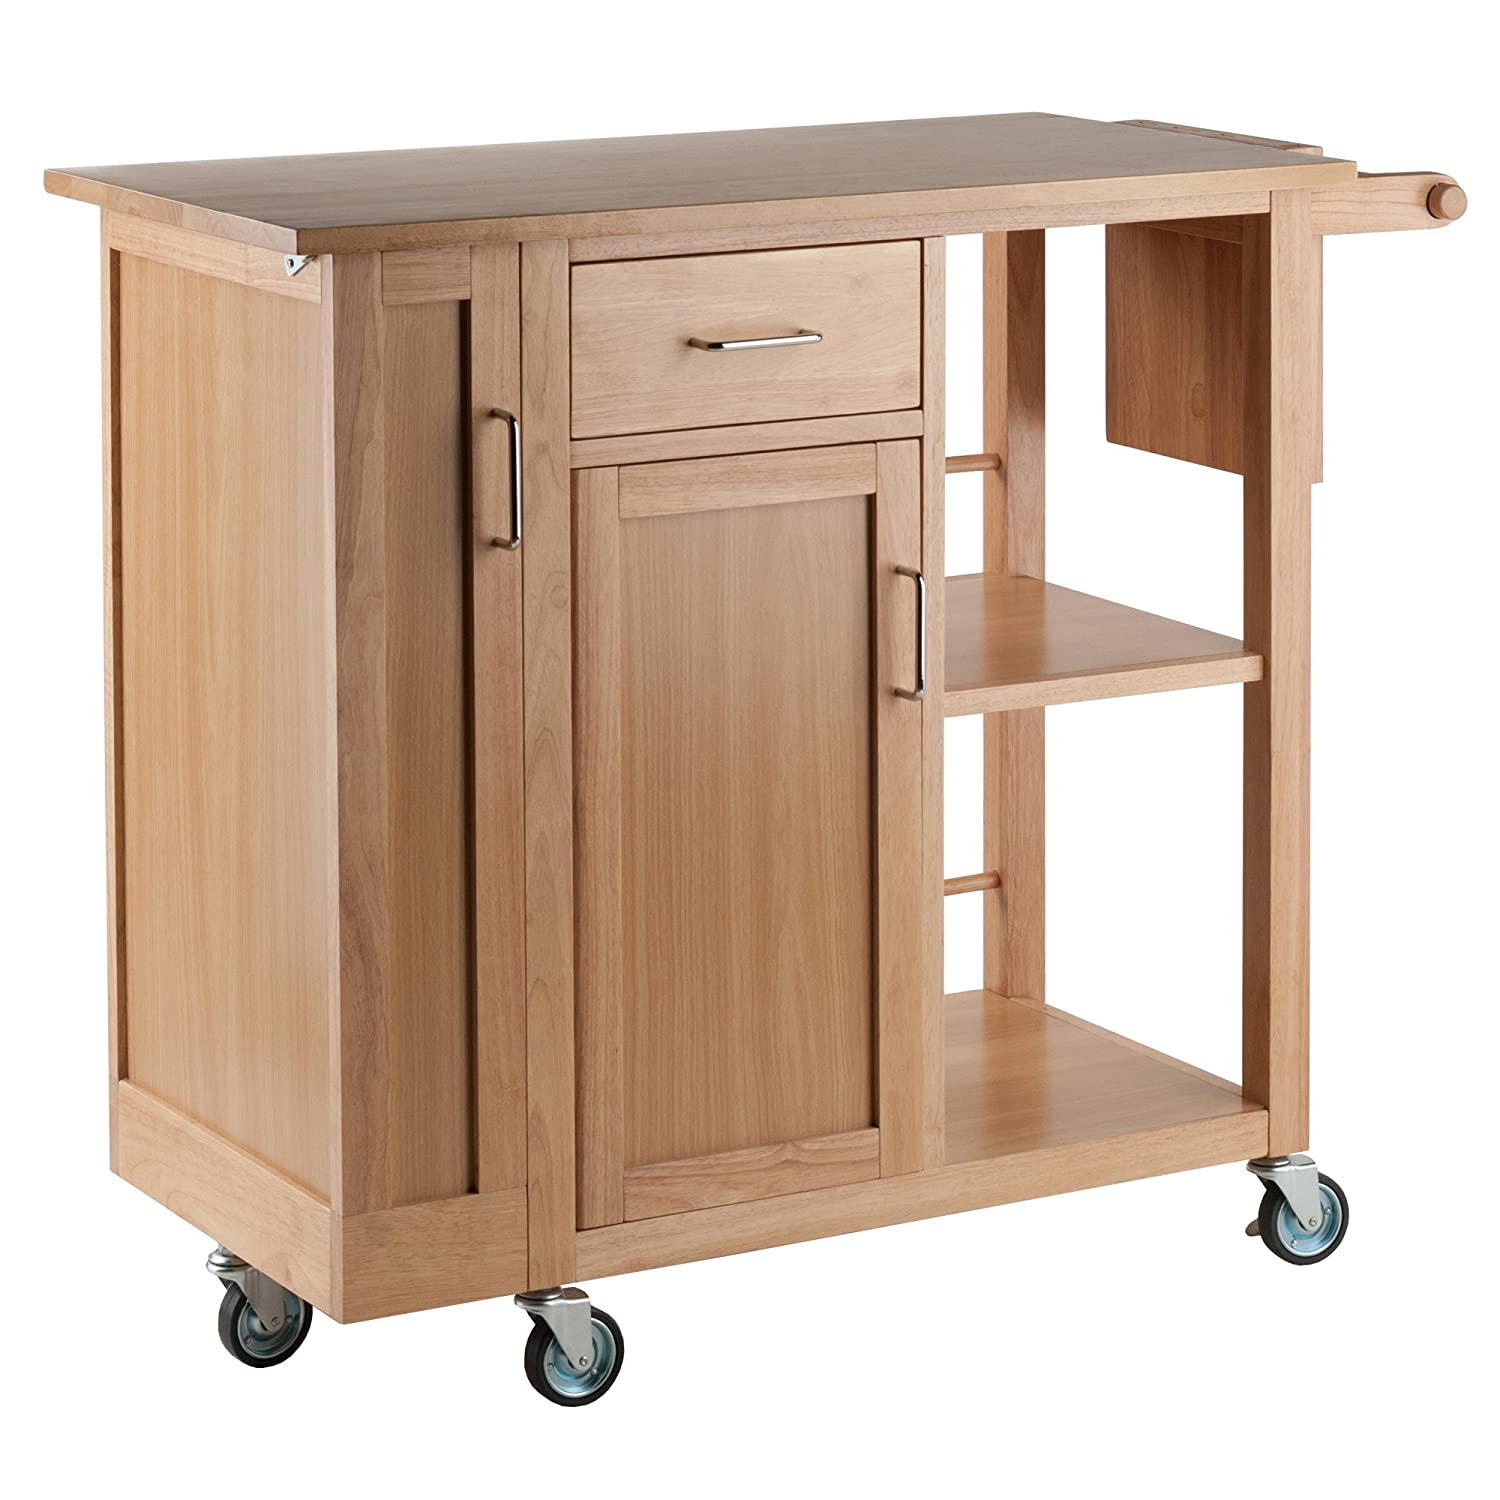 Winsome Wood Anthony Kitchen Cart Stainless Steel